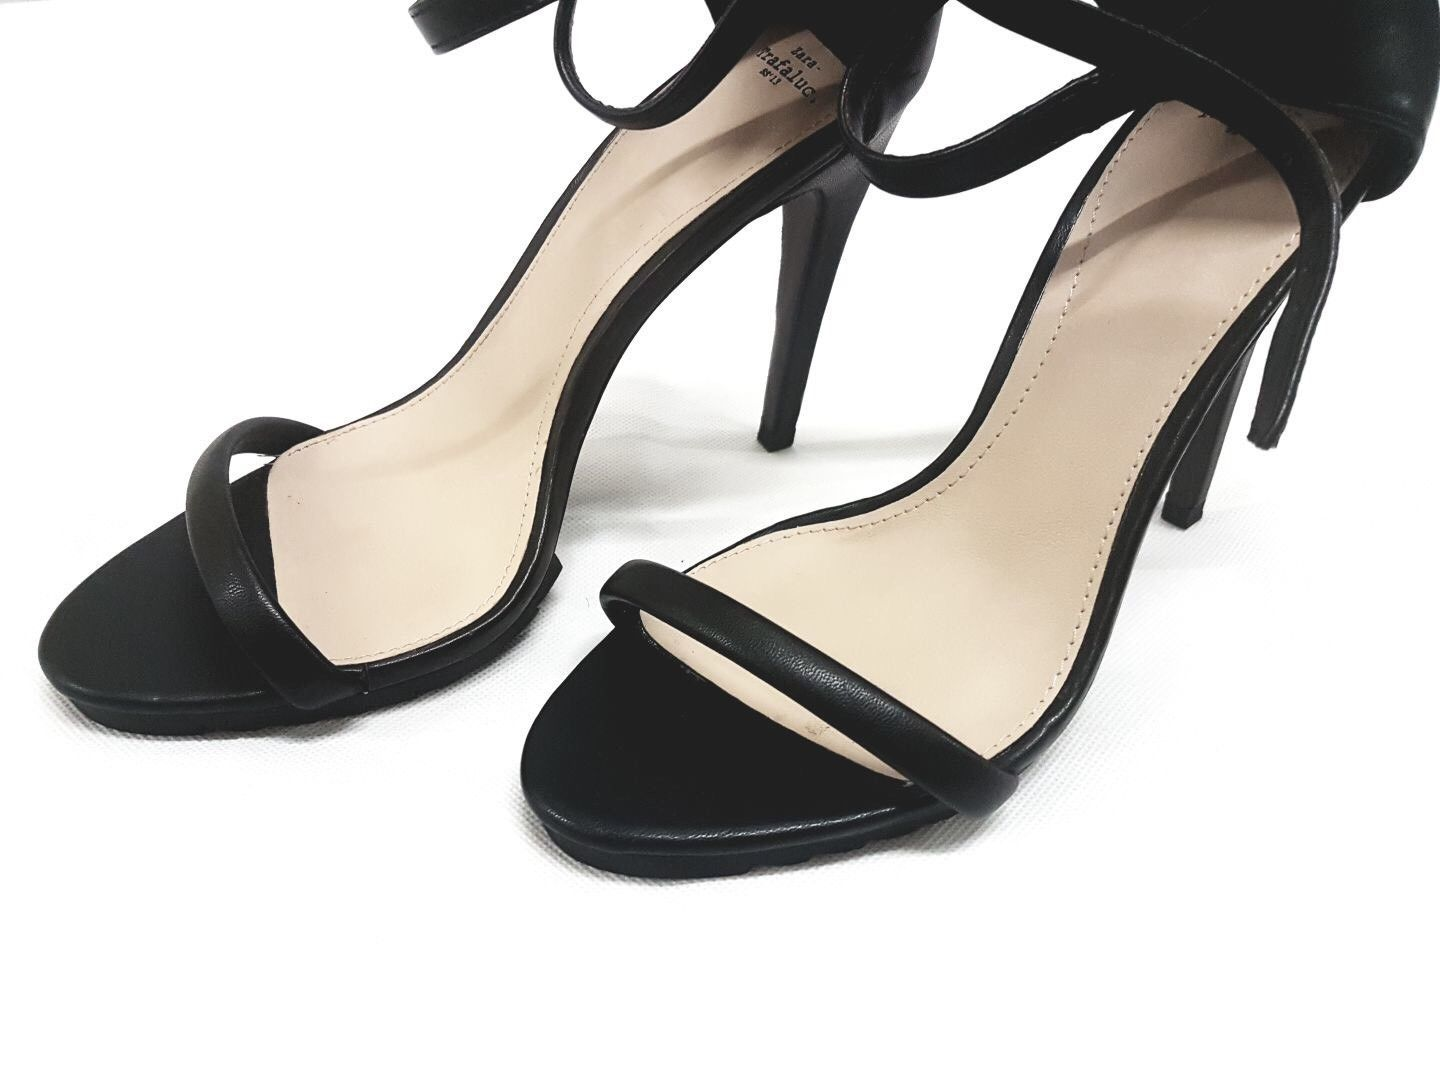 zara  Ladies Black Suede Strappy High Heel Strappy Sandal Size 39